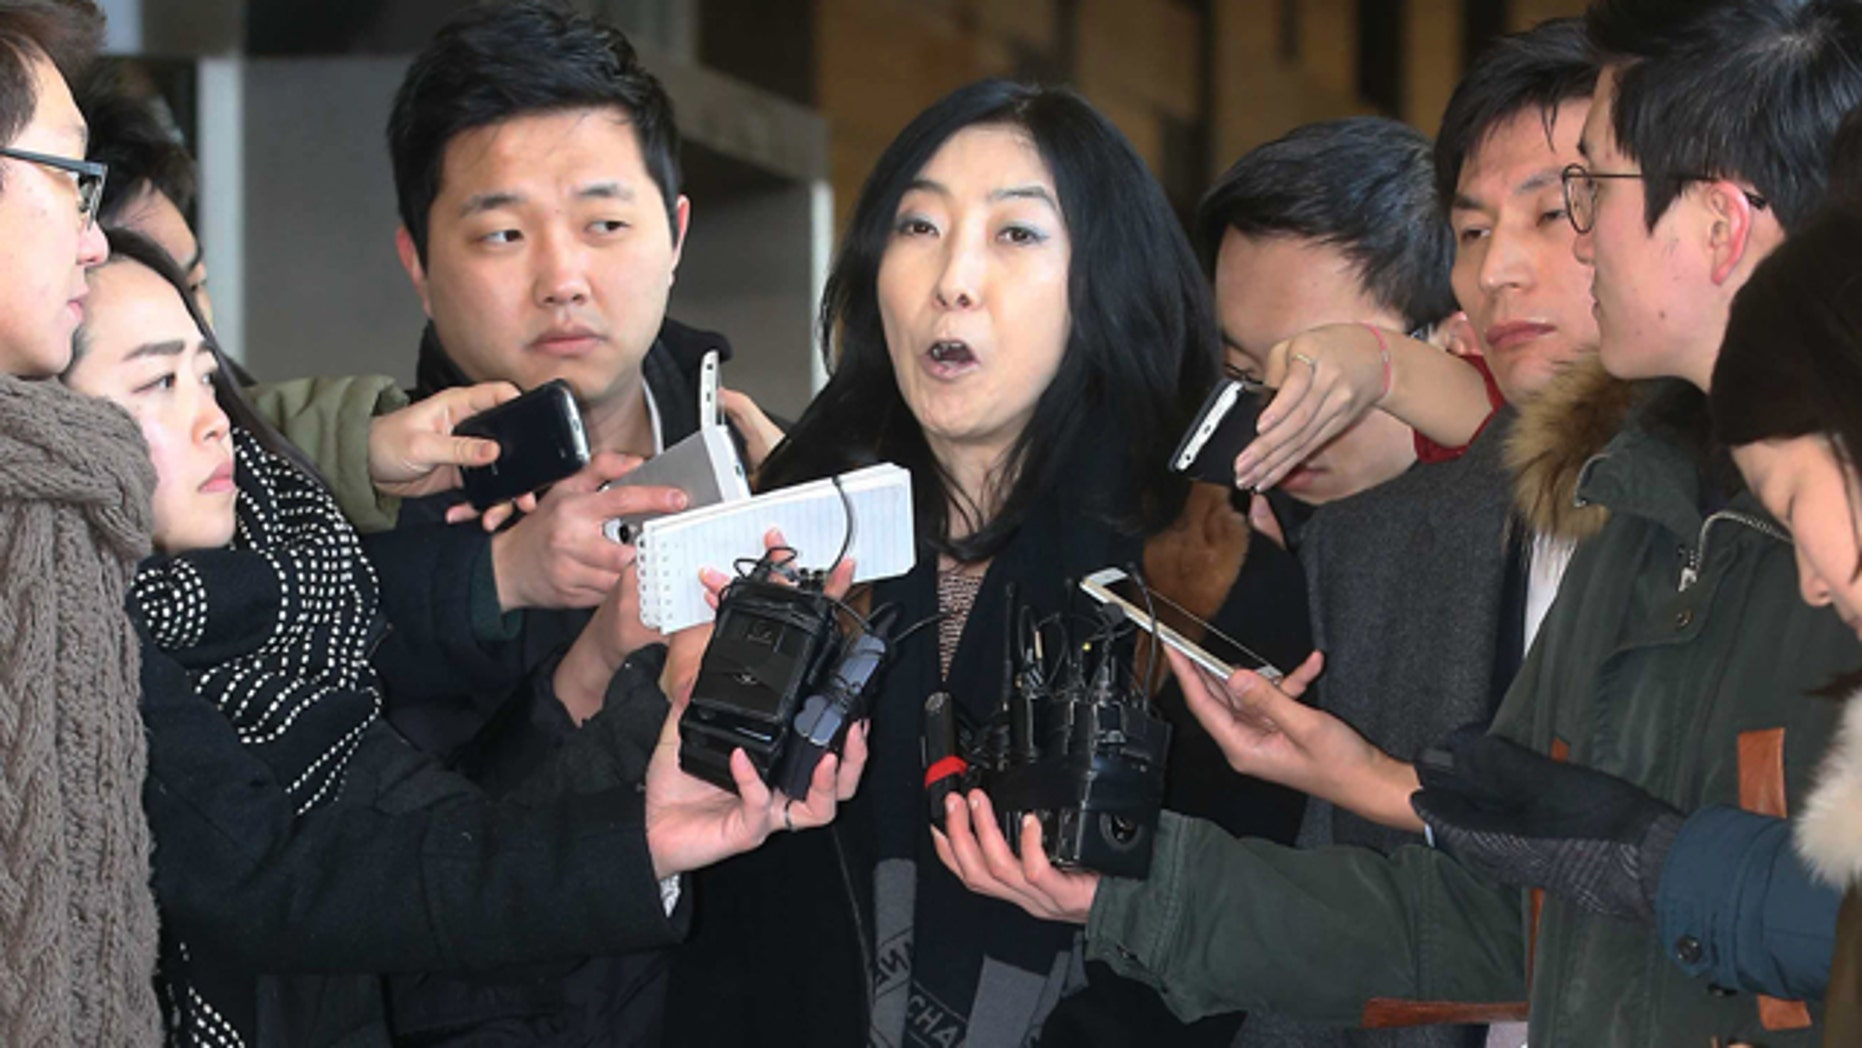 Jan. 7, 2015: California-resident Shin Eun-mi, center, talks to reporters at Seoul District Prosecutors' Office. South Korean officials say they were considering whether to deport the Korean-American woman accused of praising rival North Korea during a recent lecture. (AP Photo/Yonhap, Park Ji-ho)